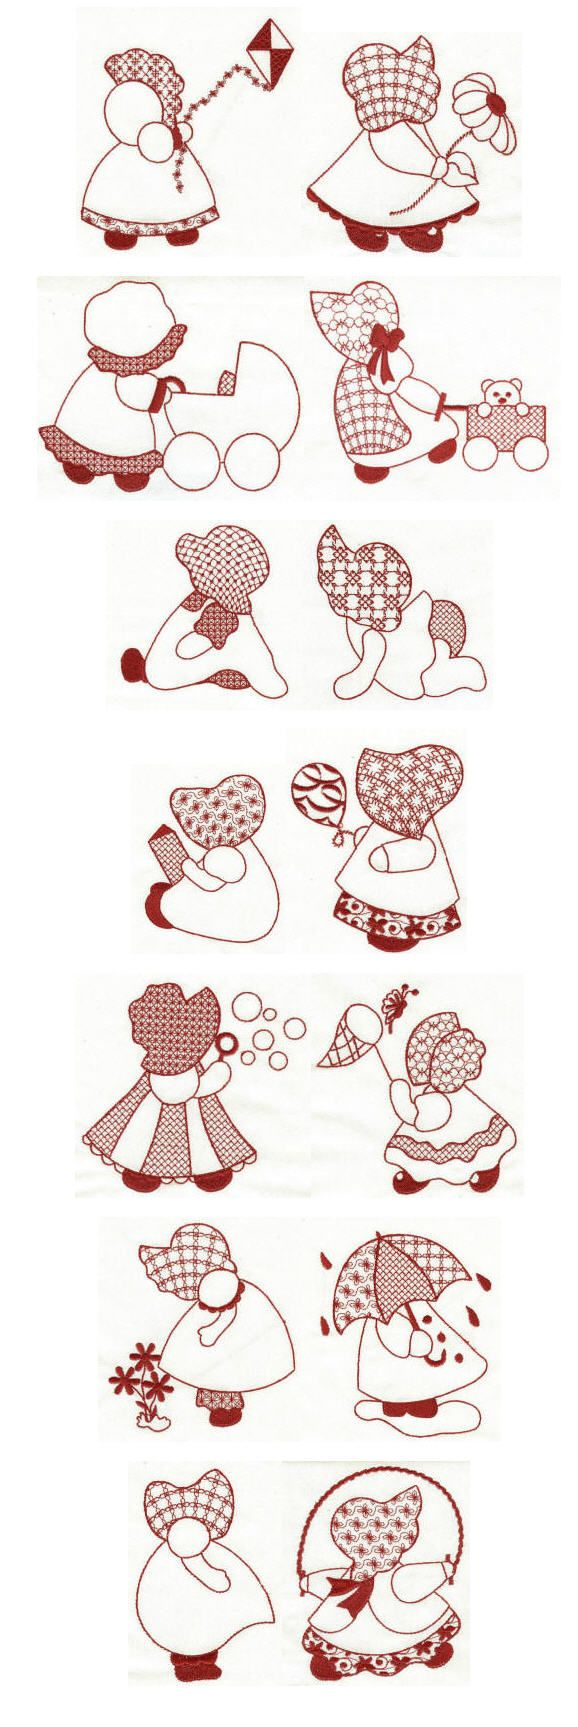 Embroidery designs | Free machine embroidery designs | Simply Sunbonnets Redwork 4x4